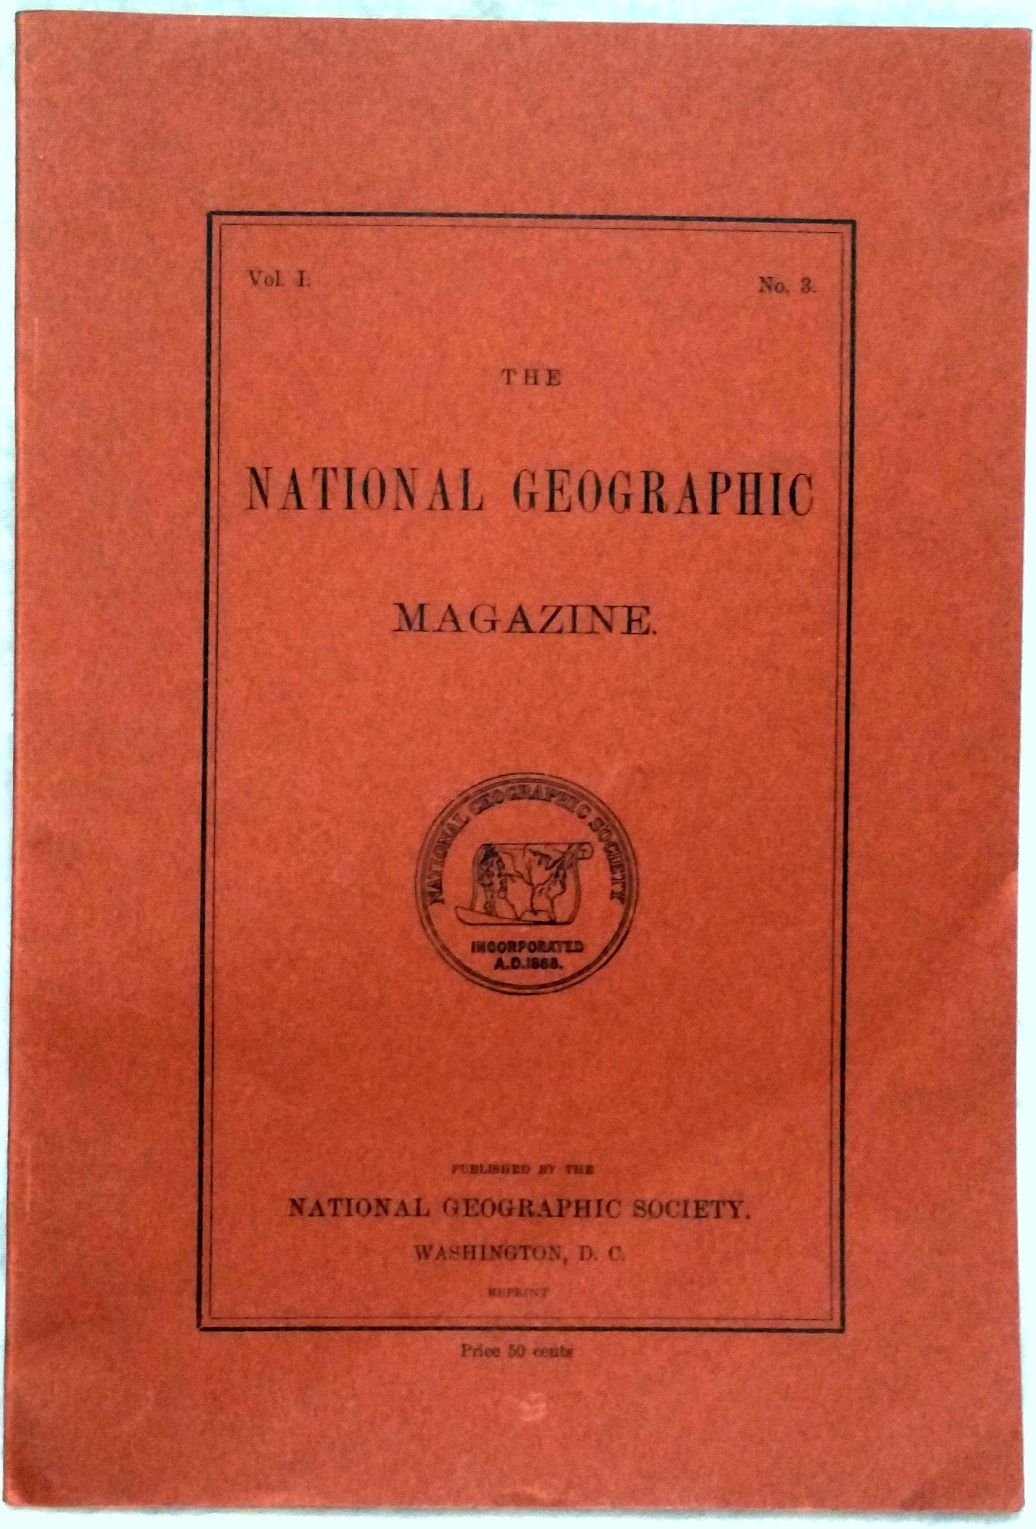 Image for The National Geographic Magazine, Vol I. No. 3